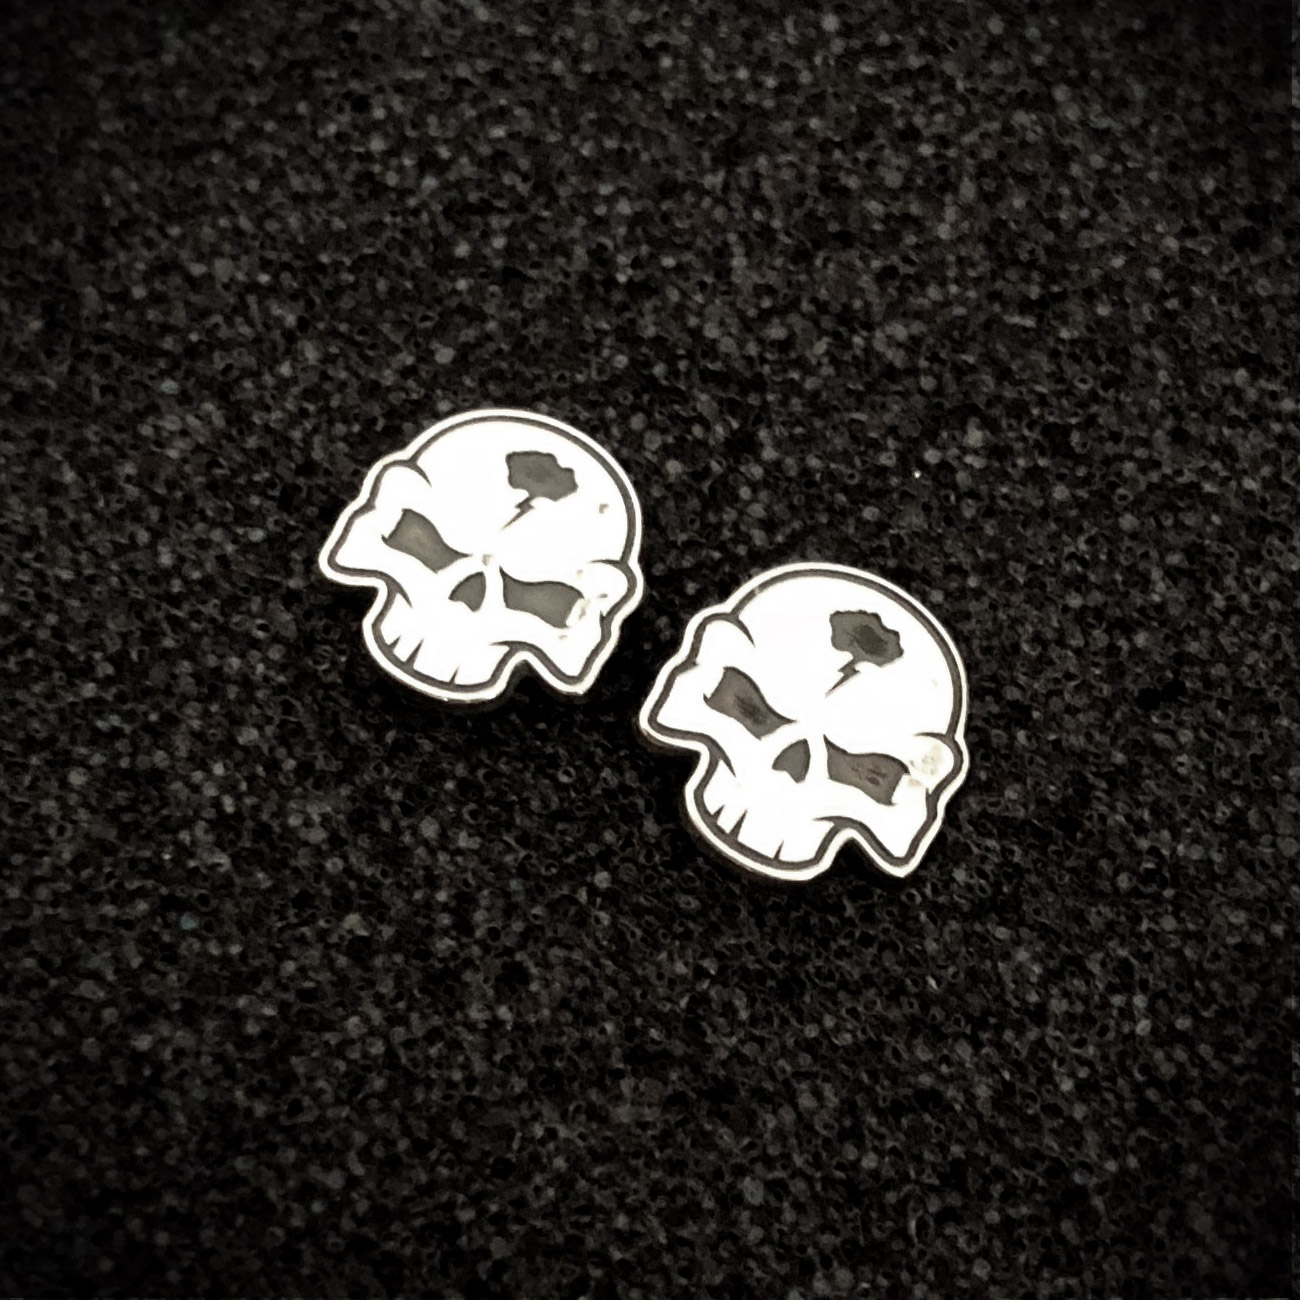 handmade-skull-earrings-sterling-silver-fat-punk-studio-01